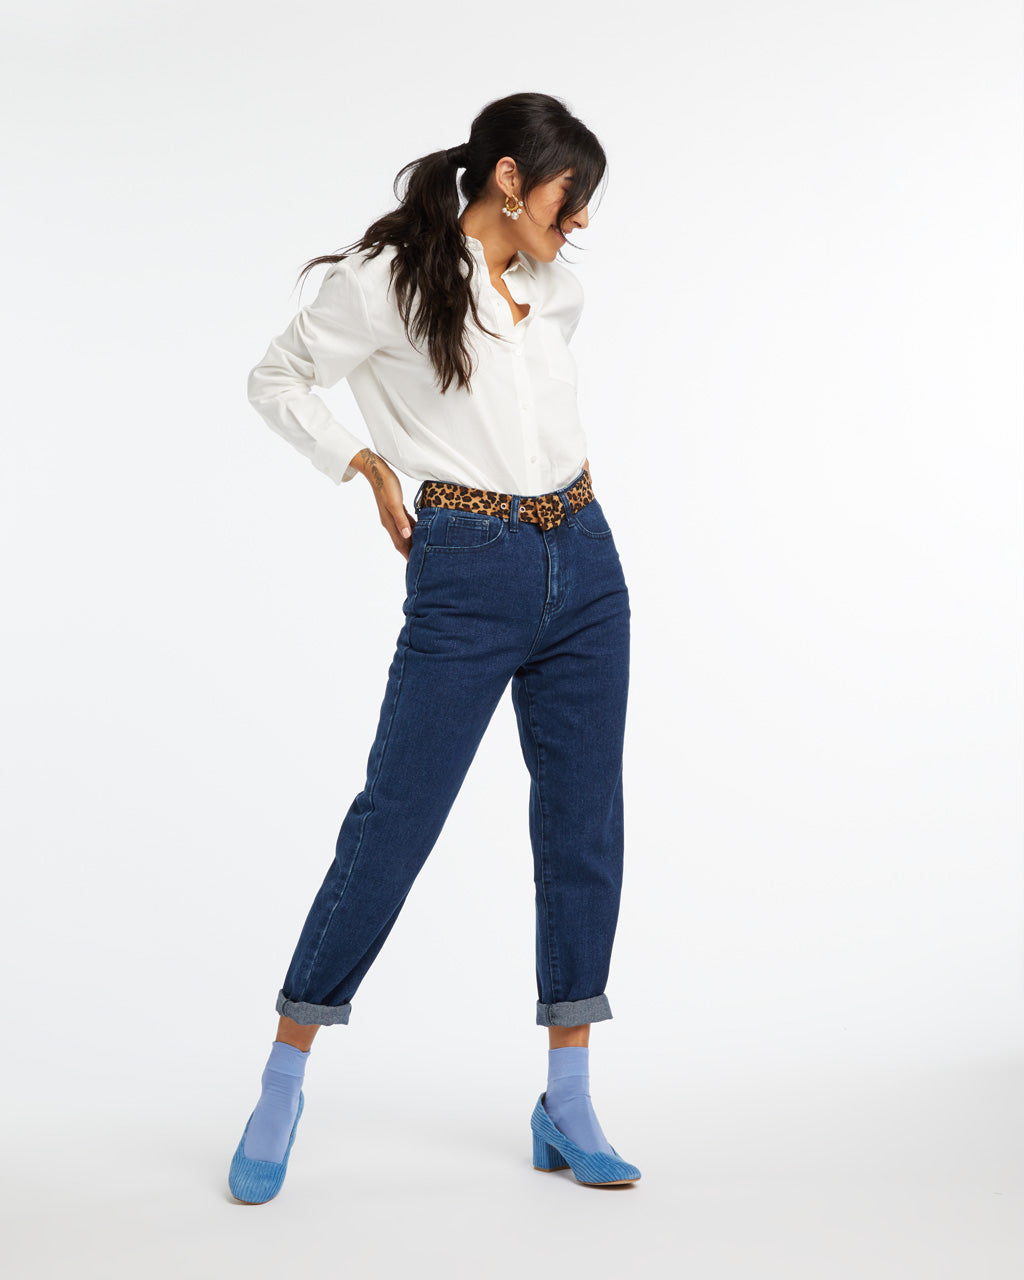 Indigo mom jeans styled with a white buttondown and blue heels.